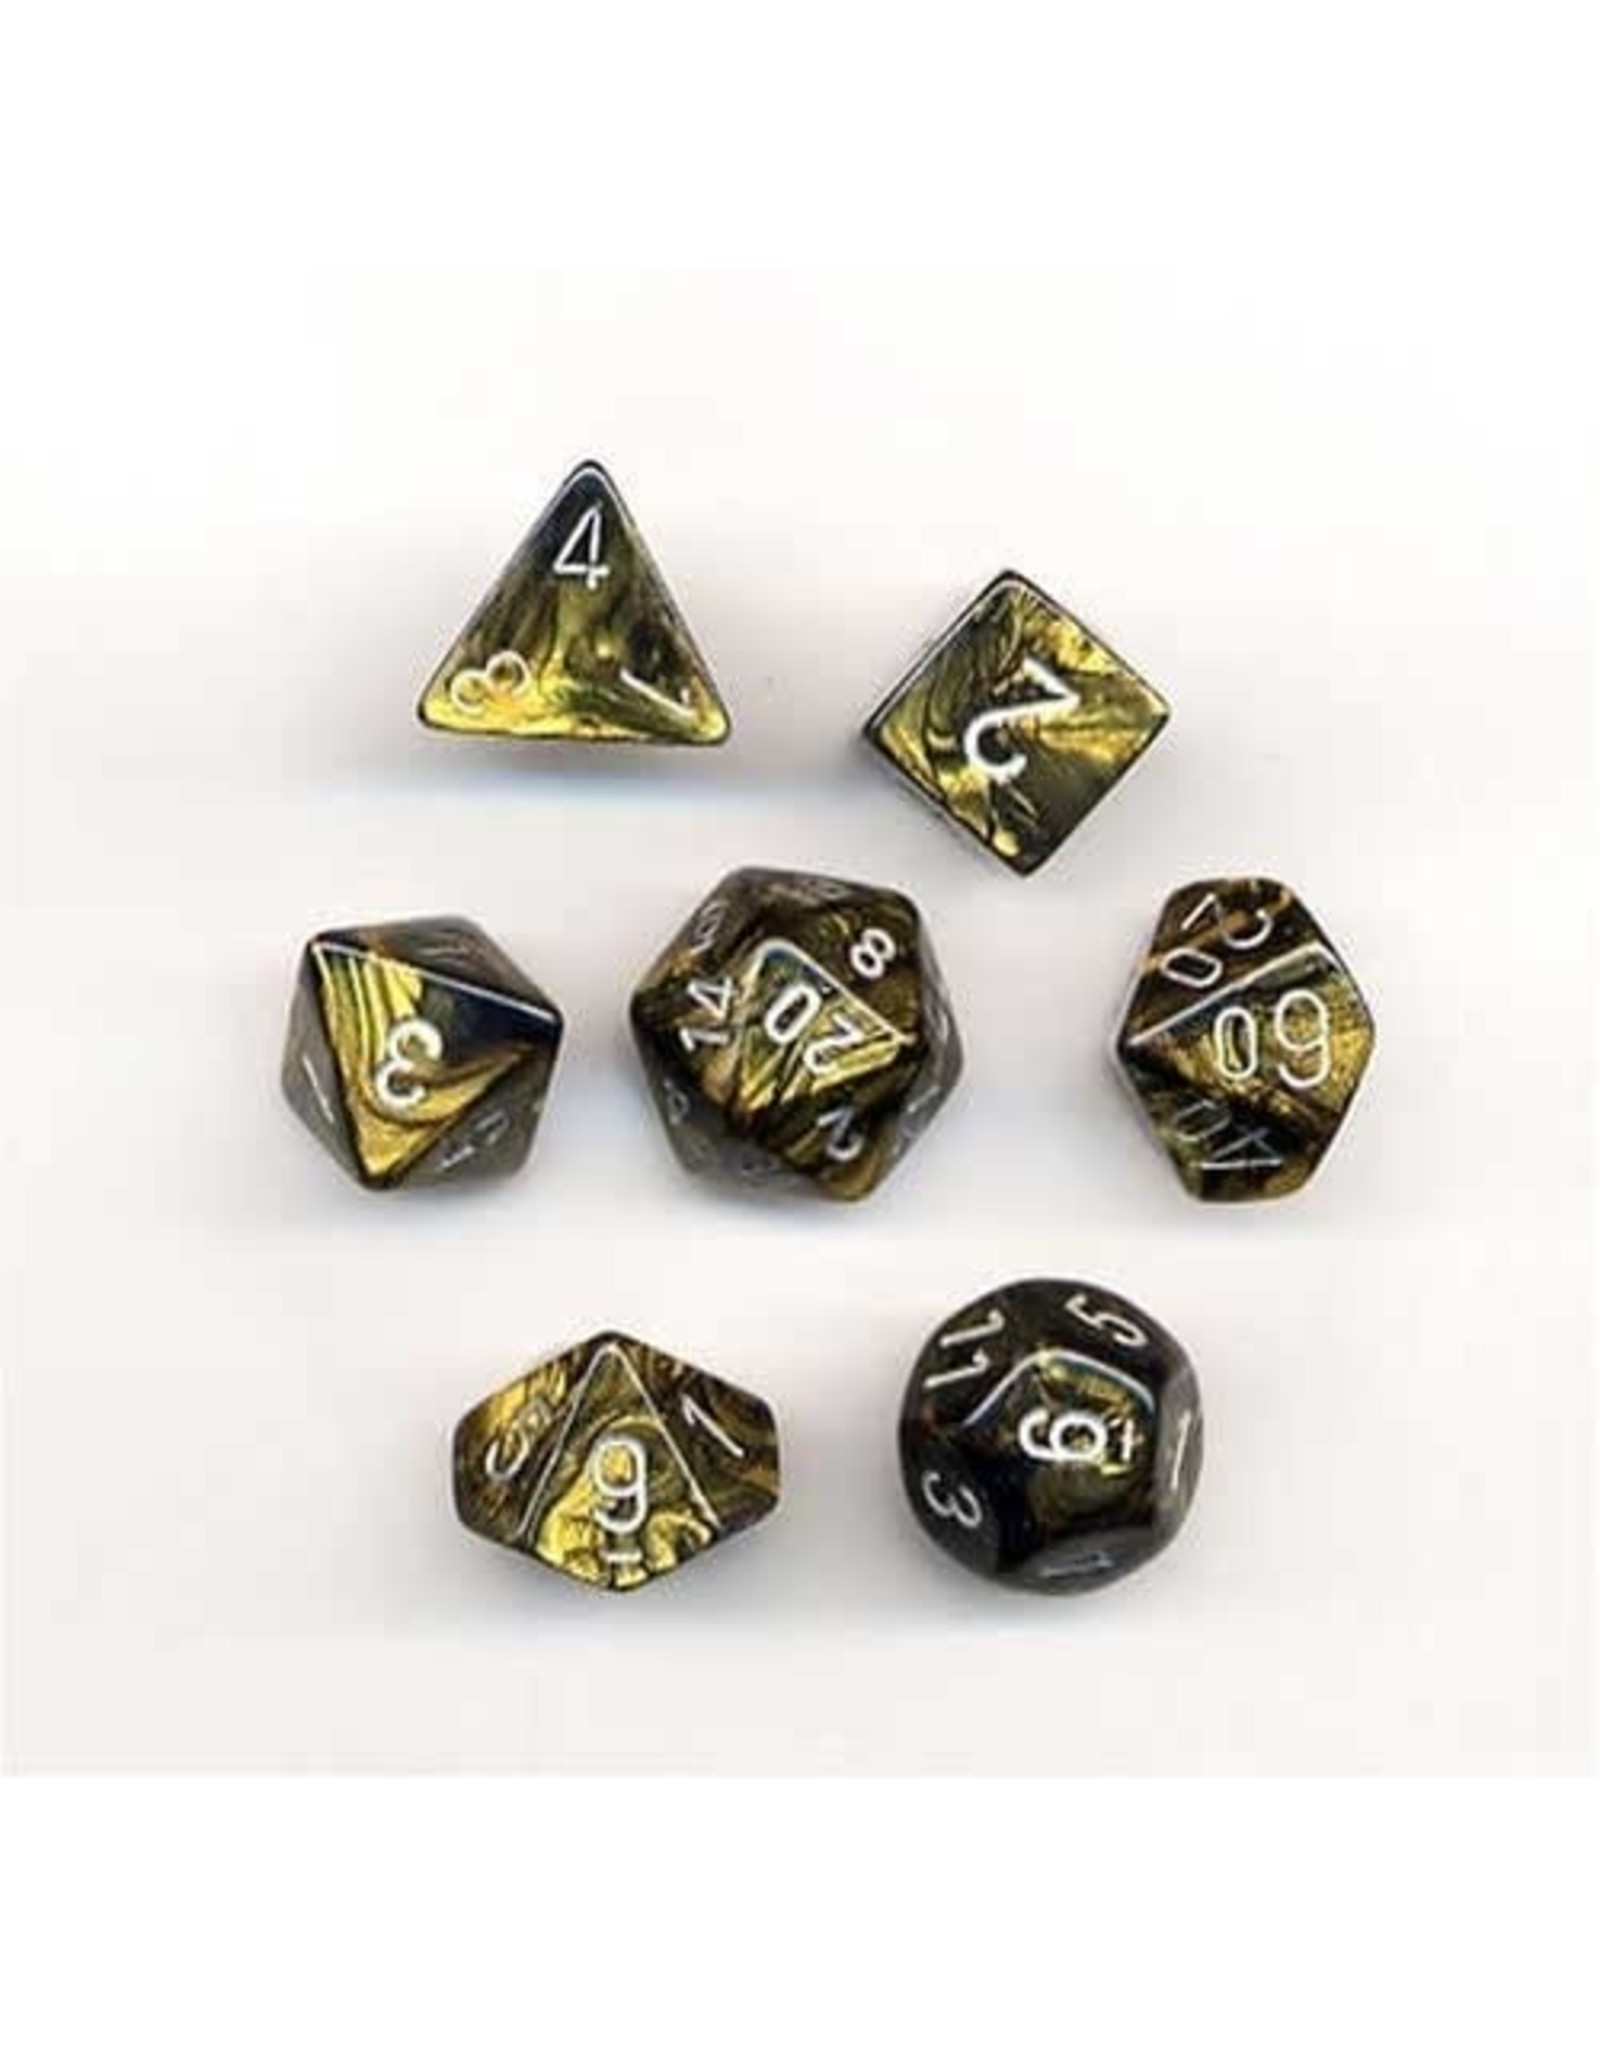 CHESSEX LEAF 7-DIE SET BLACK GOLD/SILVER